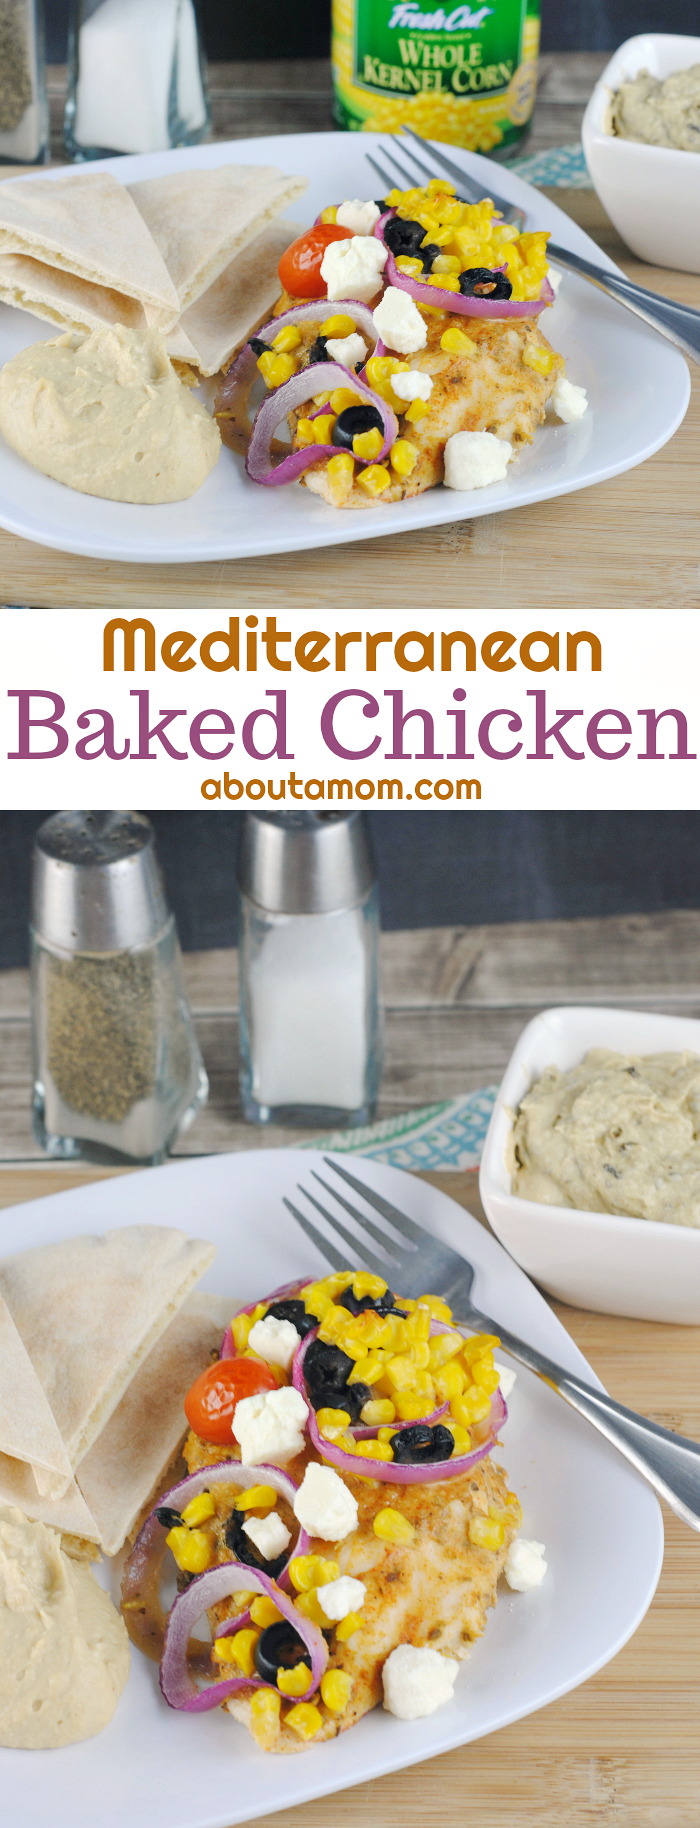 This baked Mediterranean Chicken recipe comes together easily and is perfect for a busy weeknight.